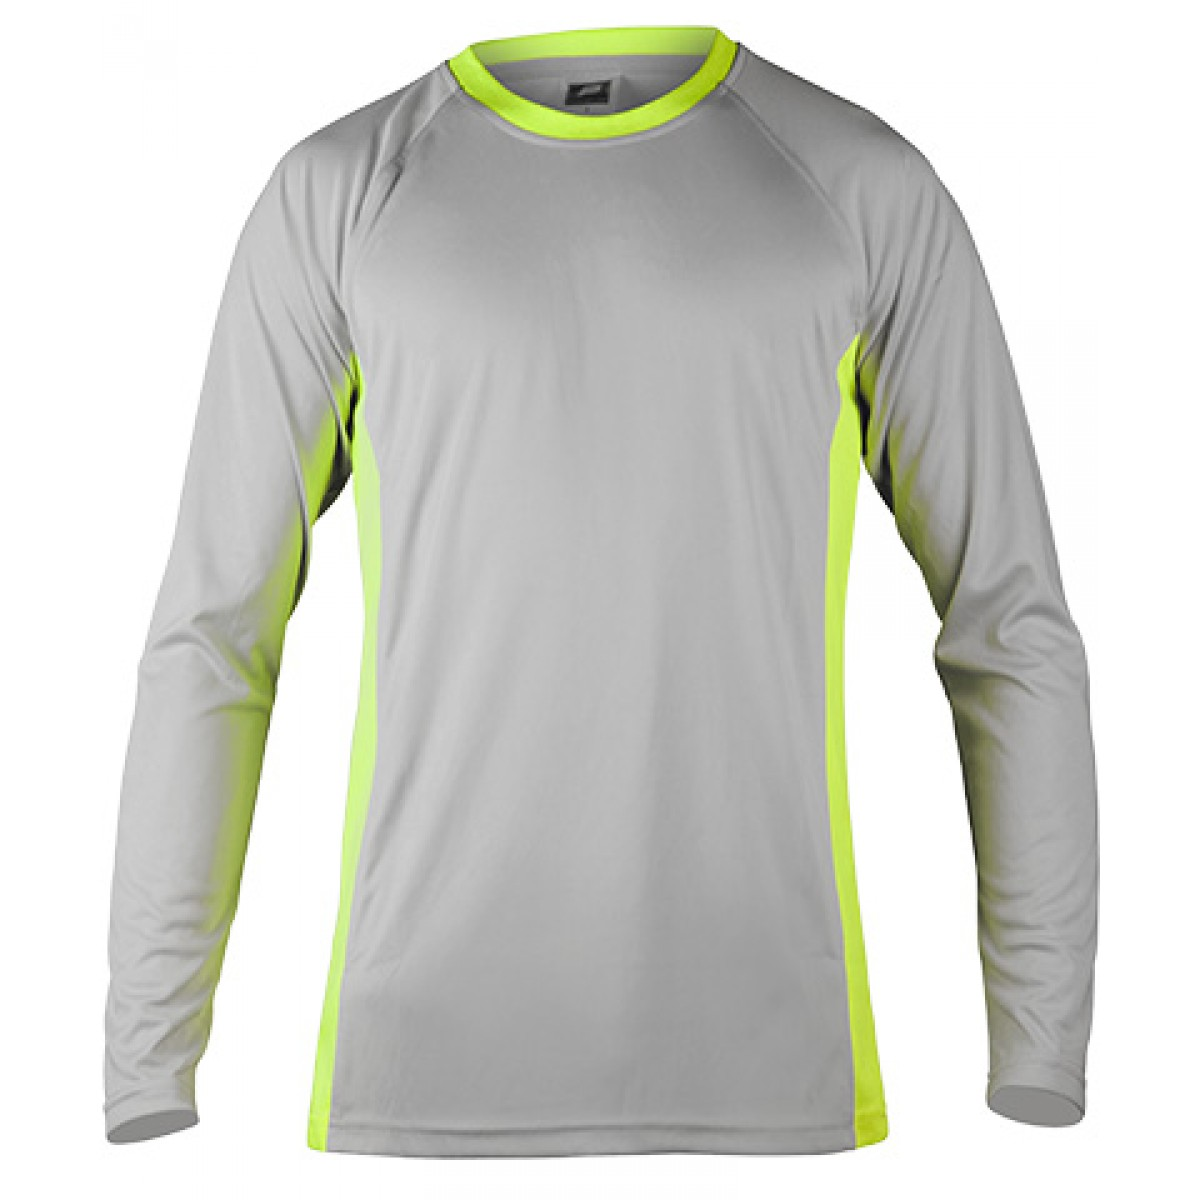 Long Sleeves Performance With Side Insert-Gray/Green-S